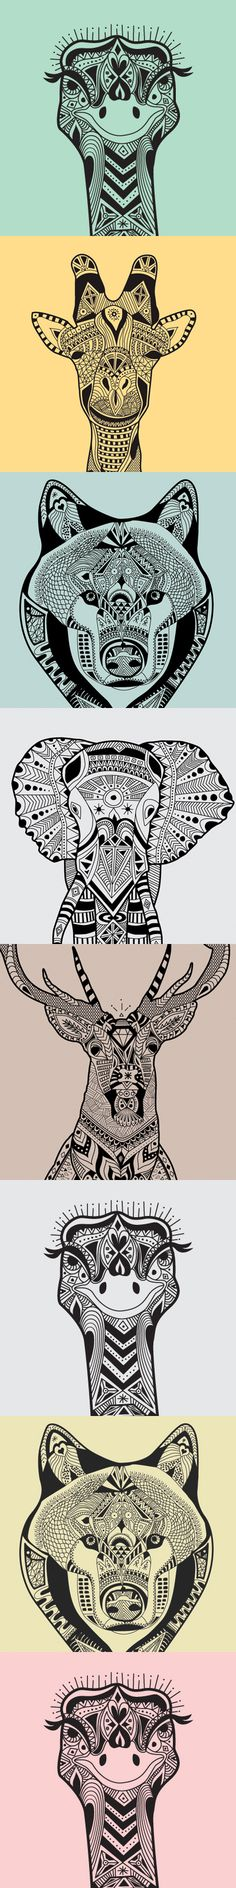 Zentangle Animals